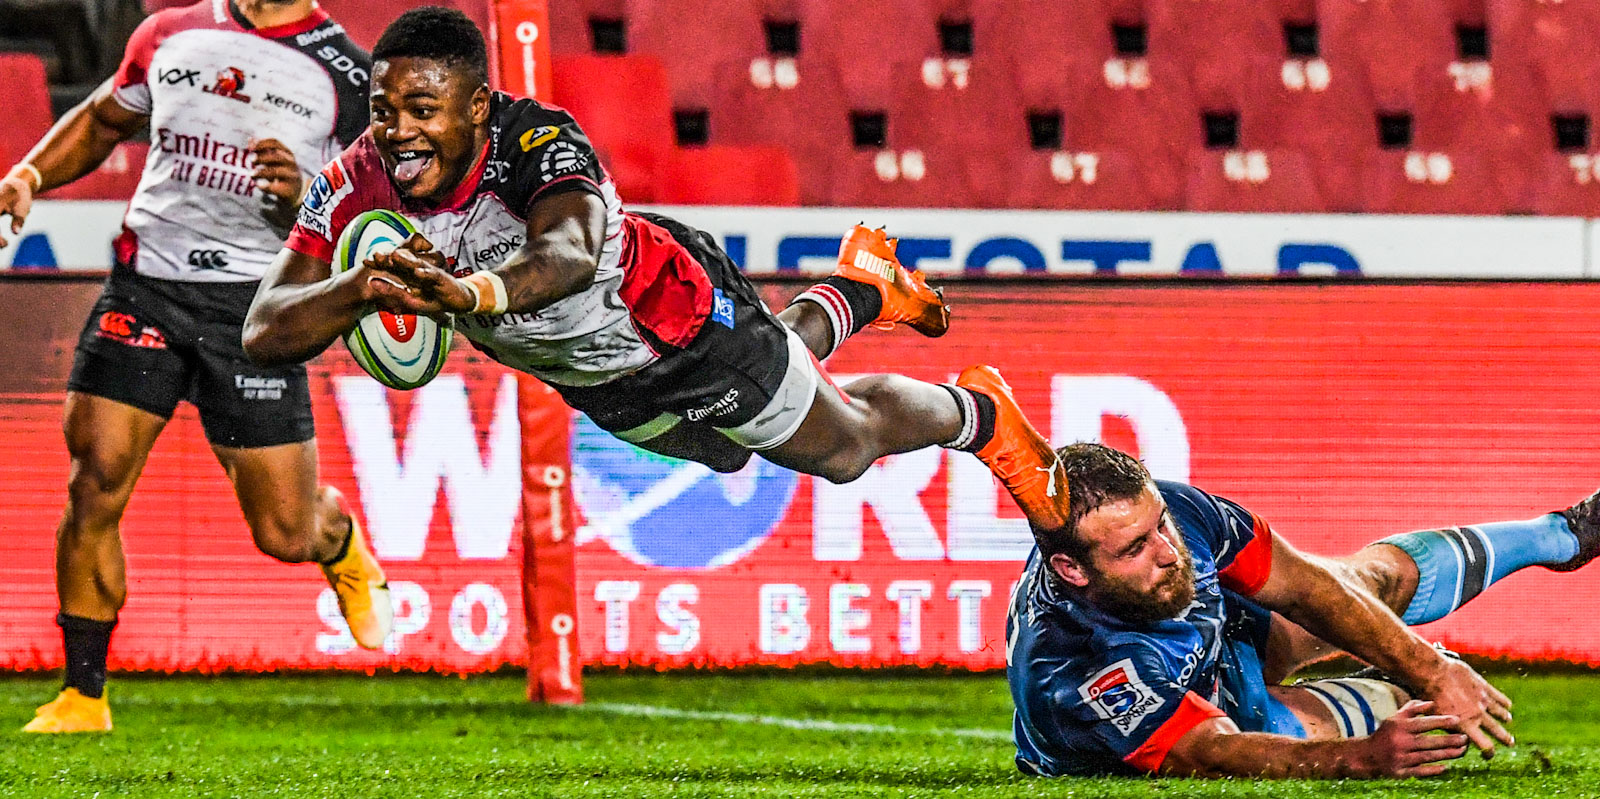 Wandisile Simelane scored a great try earlier in the season against the Vodacom Bulls